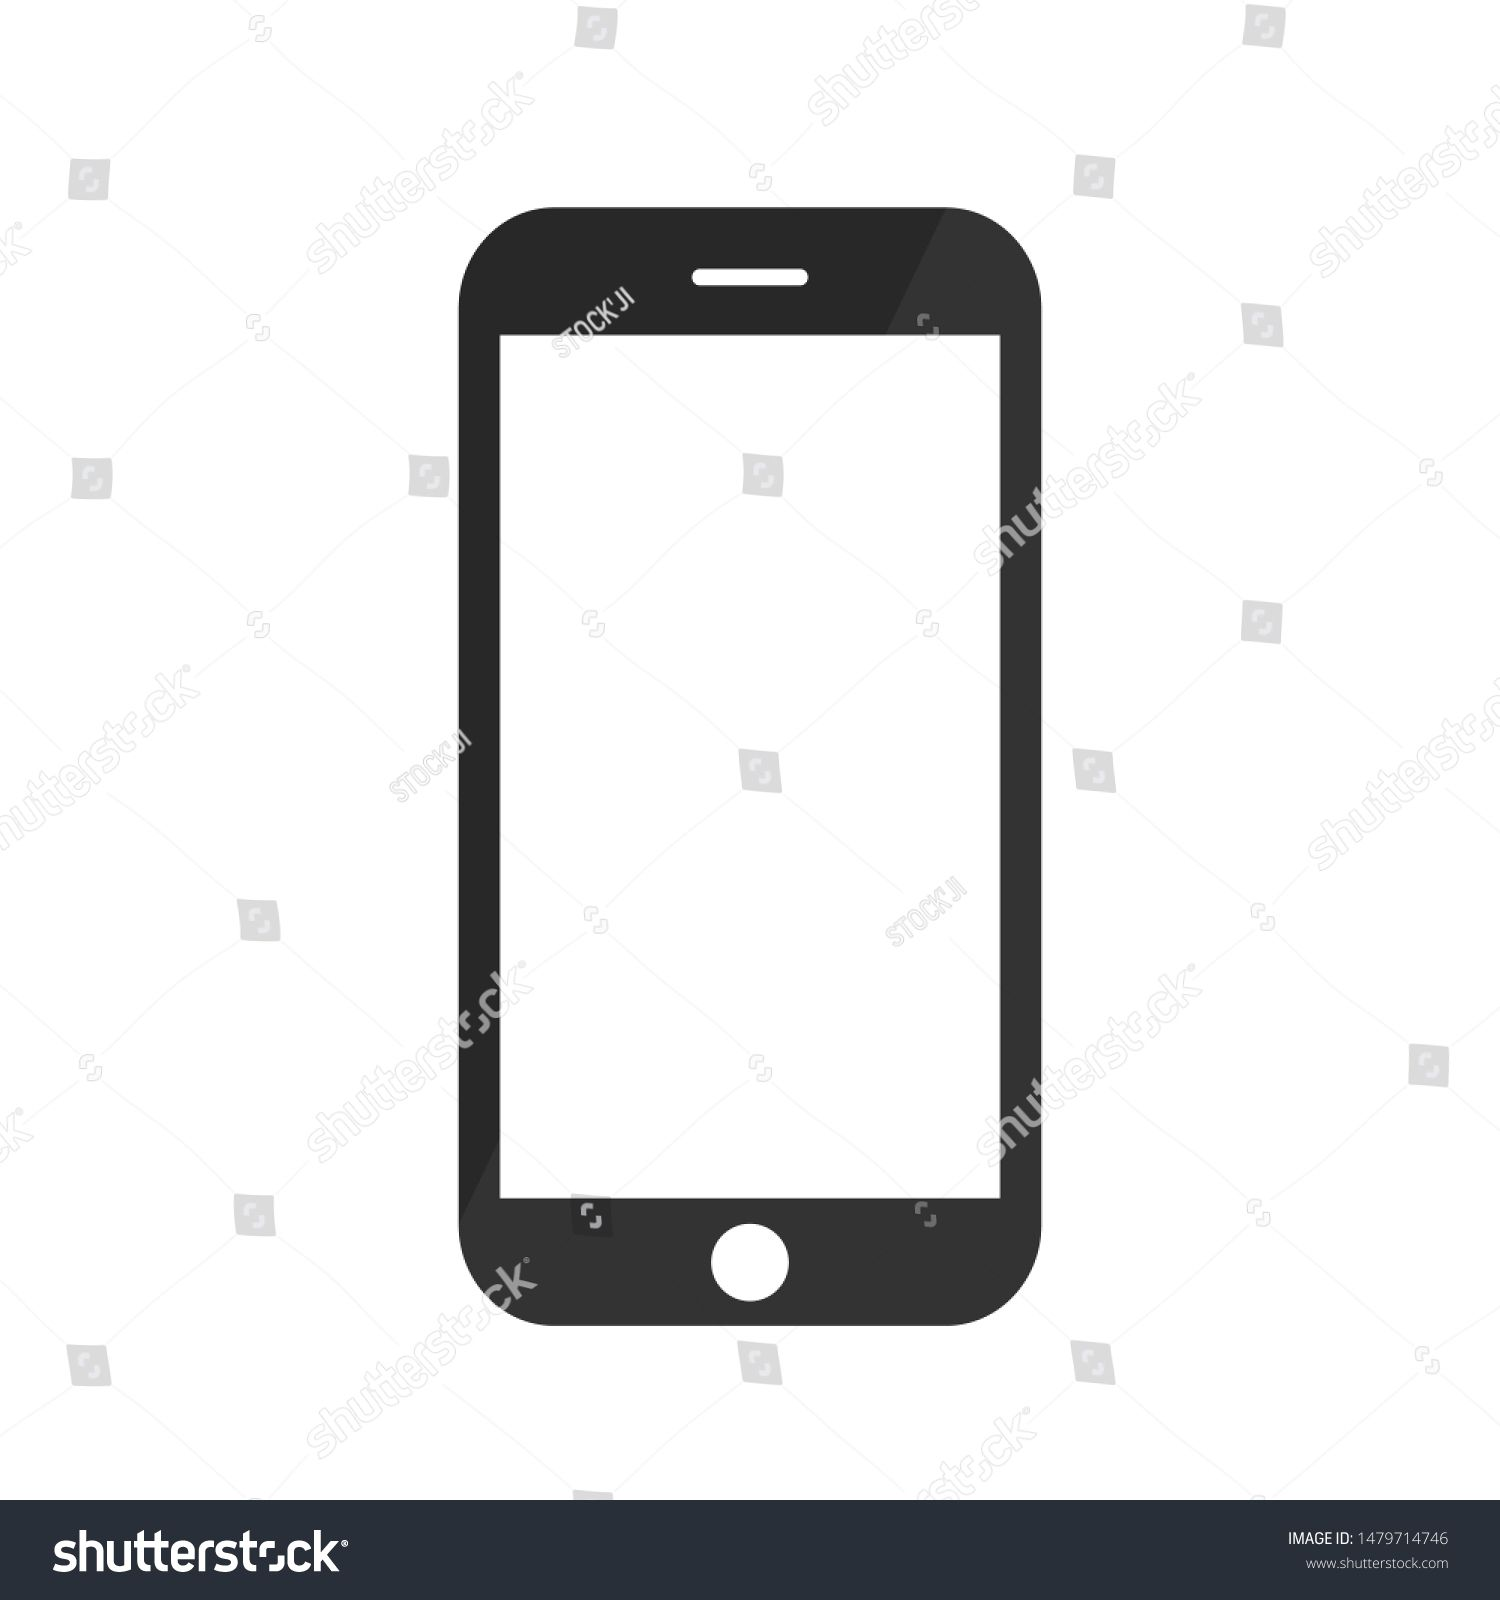 Smartphone Mobile Phone Iphone On White Background Transparent Black And White Mobile Phone Icon Vector Ad Ad Iphone Whit Iphone Phone Avenger Artwork